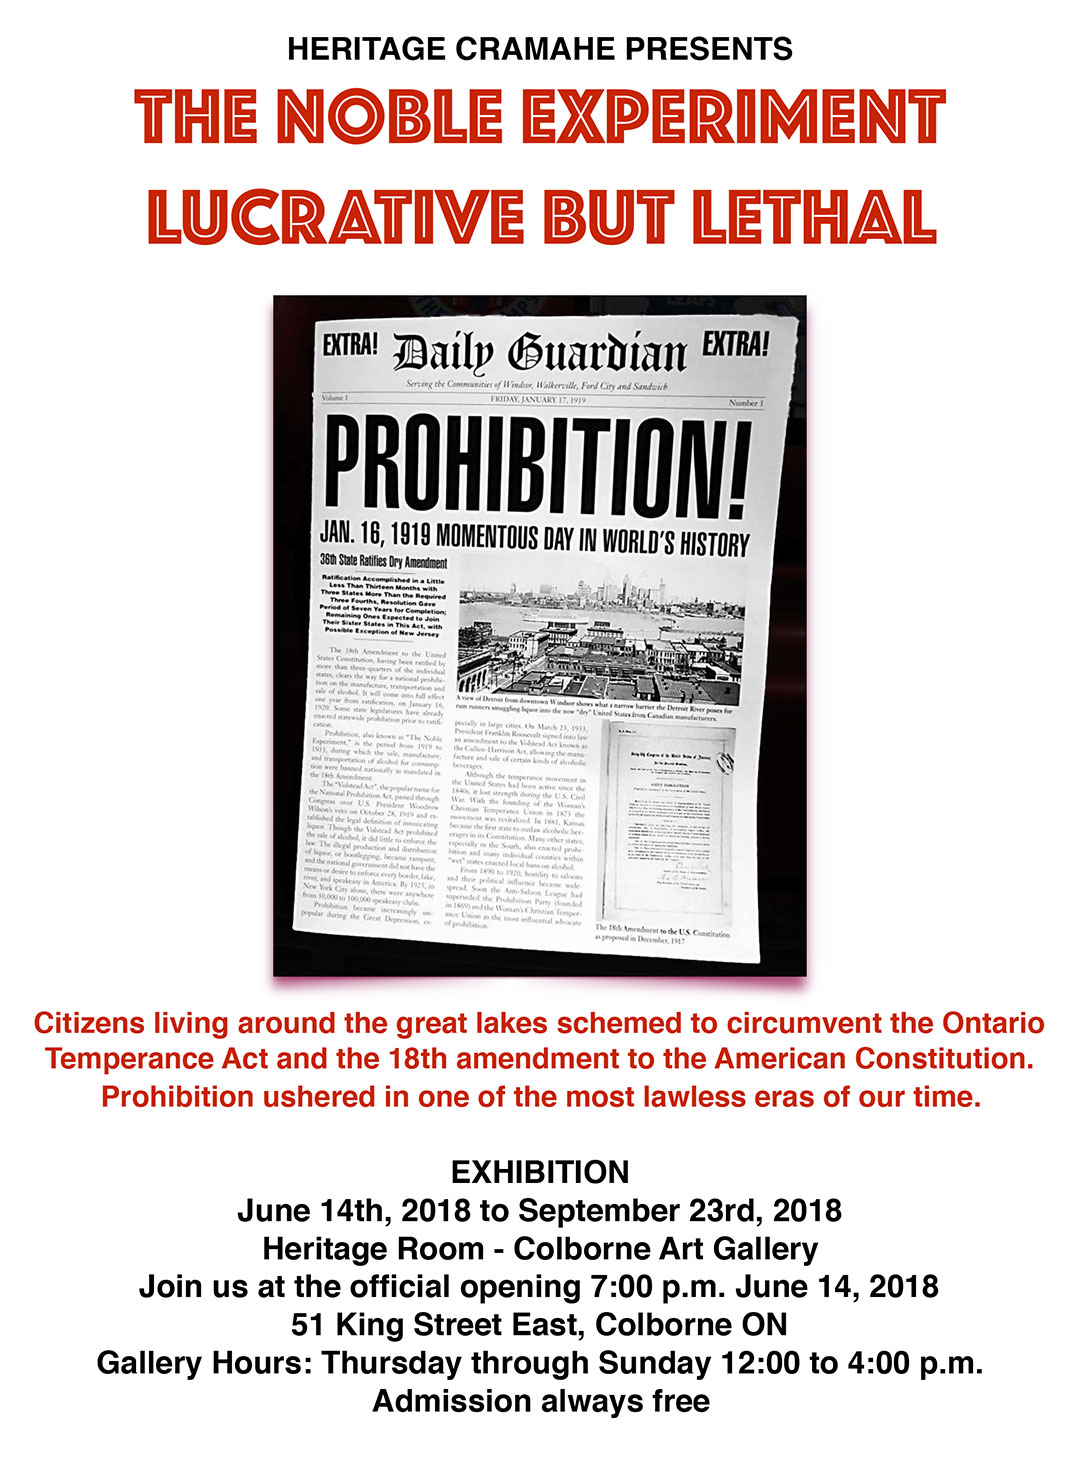 Heritage Cramahe presents The Noble Experiment, Lucrative but Lethal - Prohibition